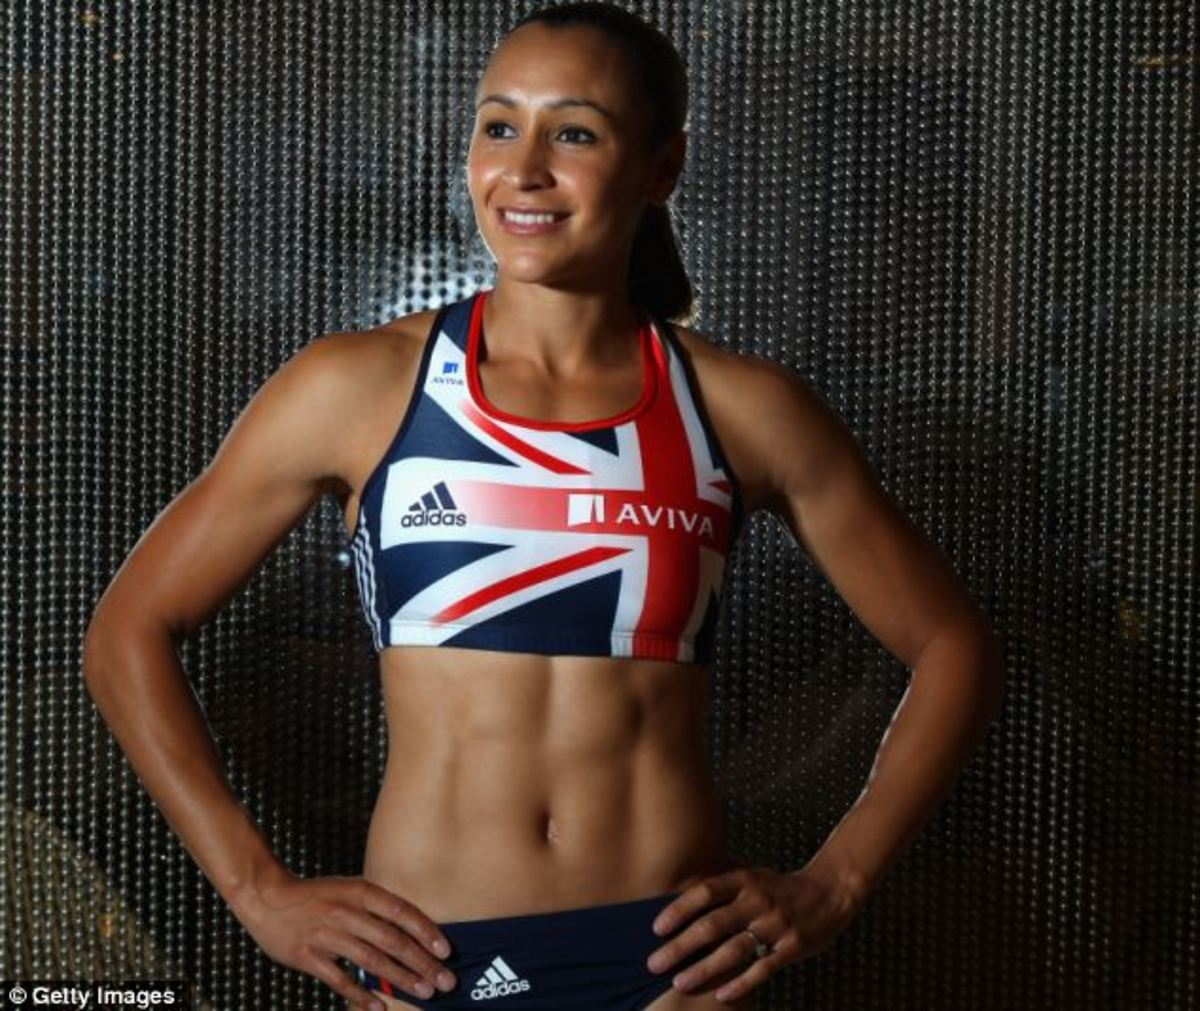 Top 10 Hottest Female Olympian Bodies